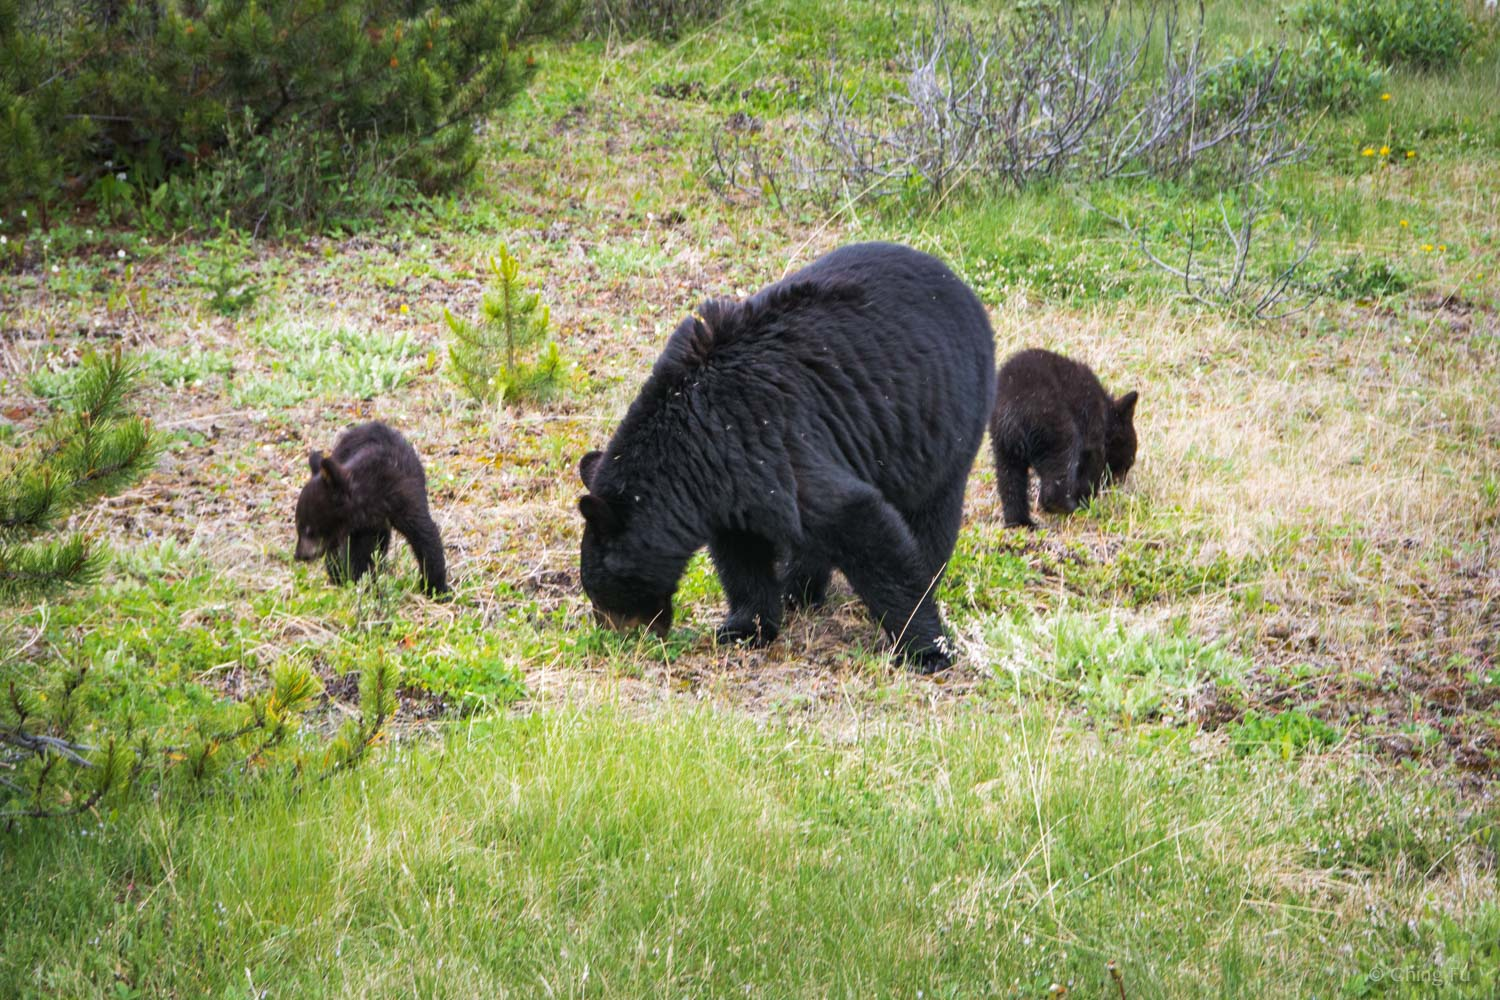 I took this photo from inside the truck that was parked on the side of the road. I zoomed in to get a closer view of the mama and her cubs.